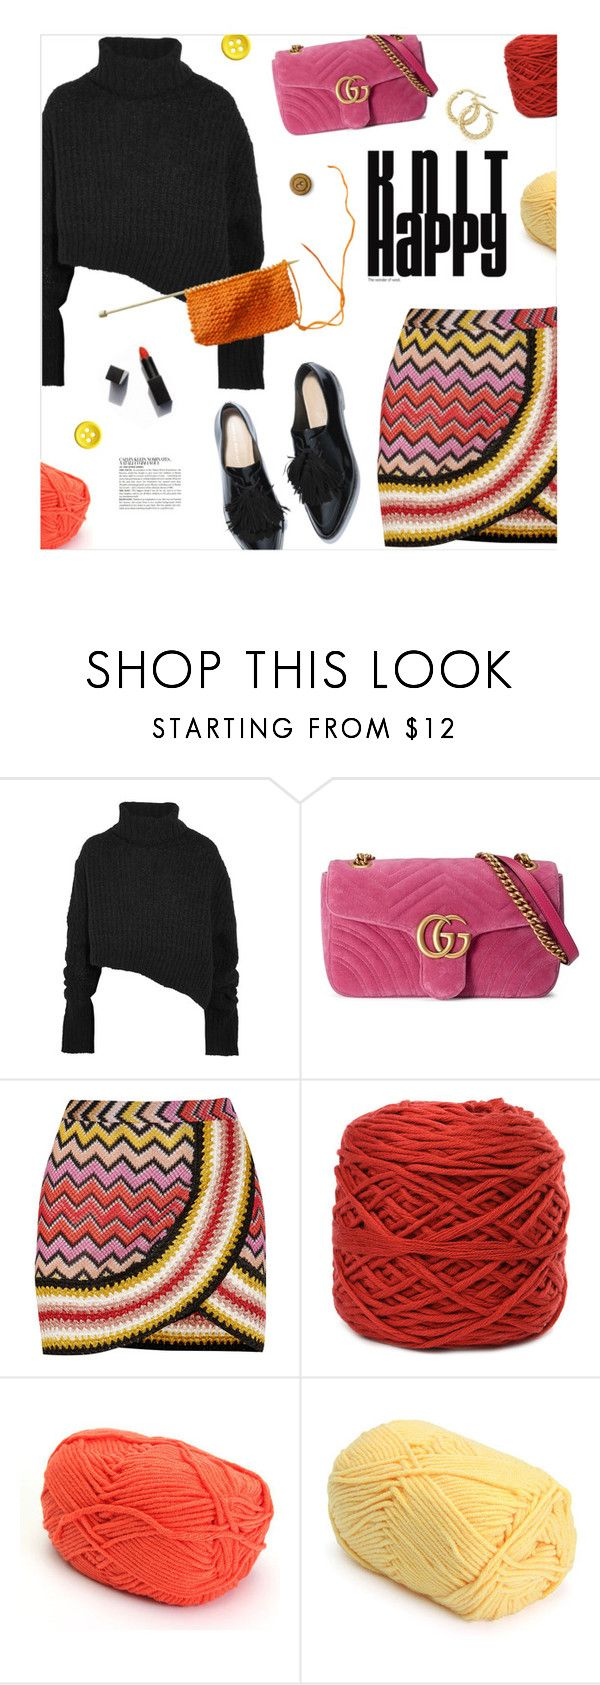 """Dressed for fall"" by magdafunk ❤ liked on Polyvore featuring Ann Demeulemeester, Gucci, Missoni, Garance Doré, McGinn, Oxfords, Sweater, chunkyknits, velvetbag and knitskirts"